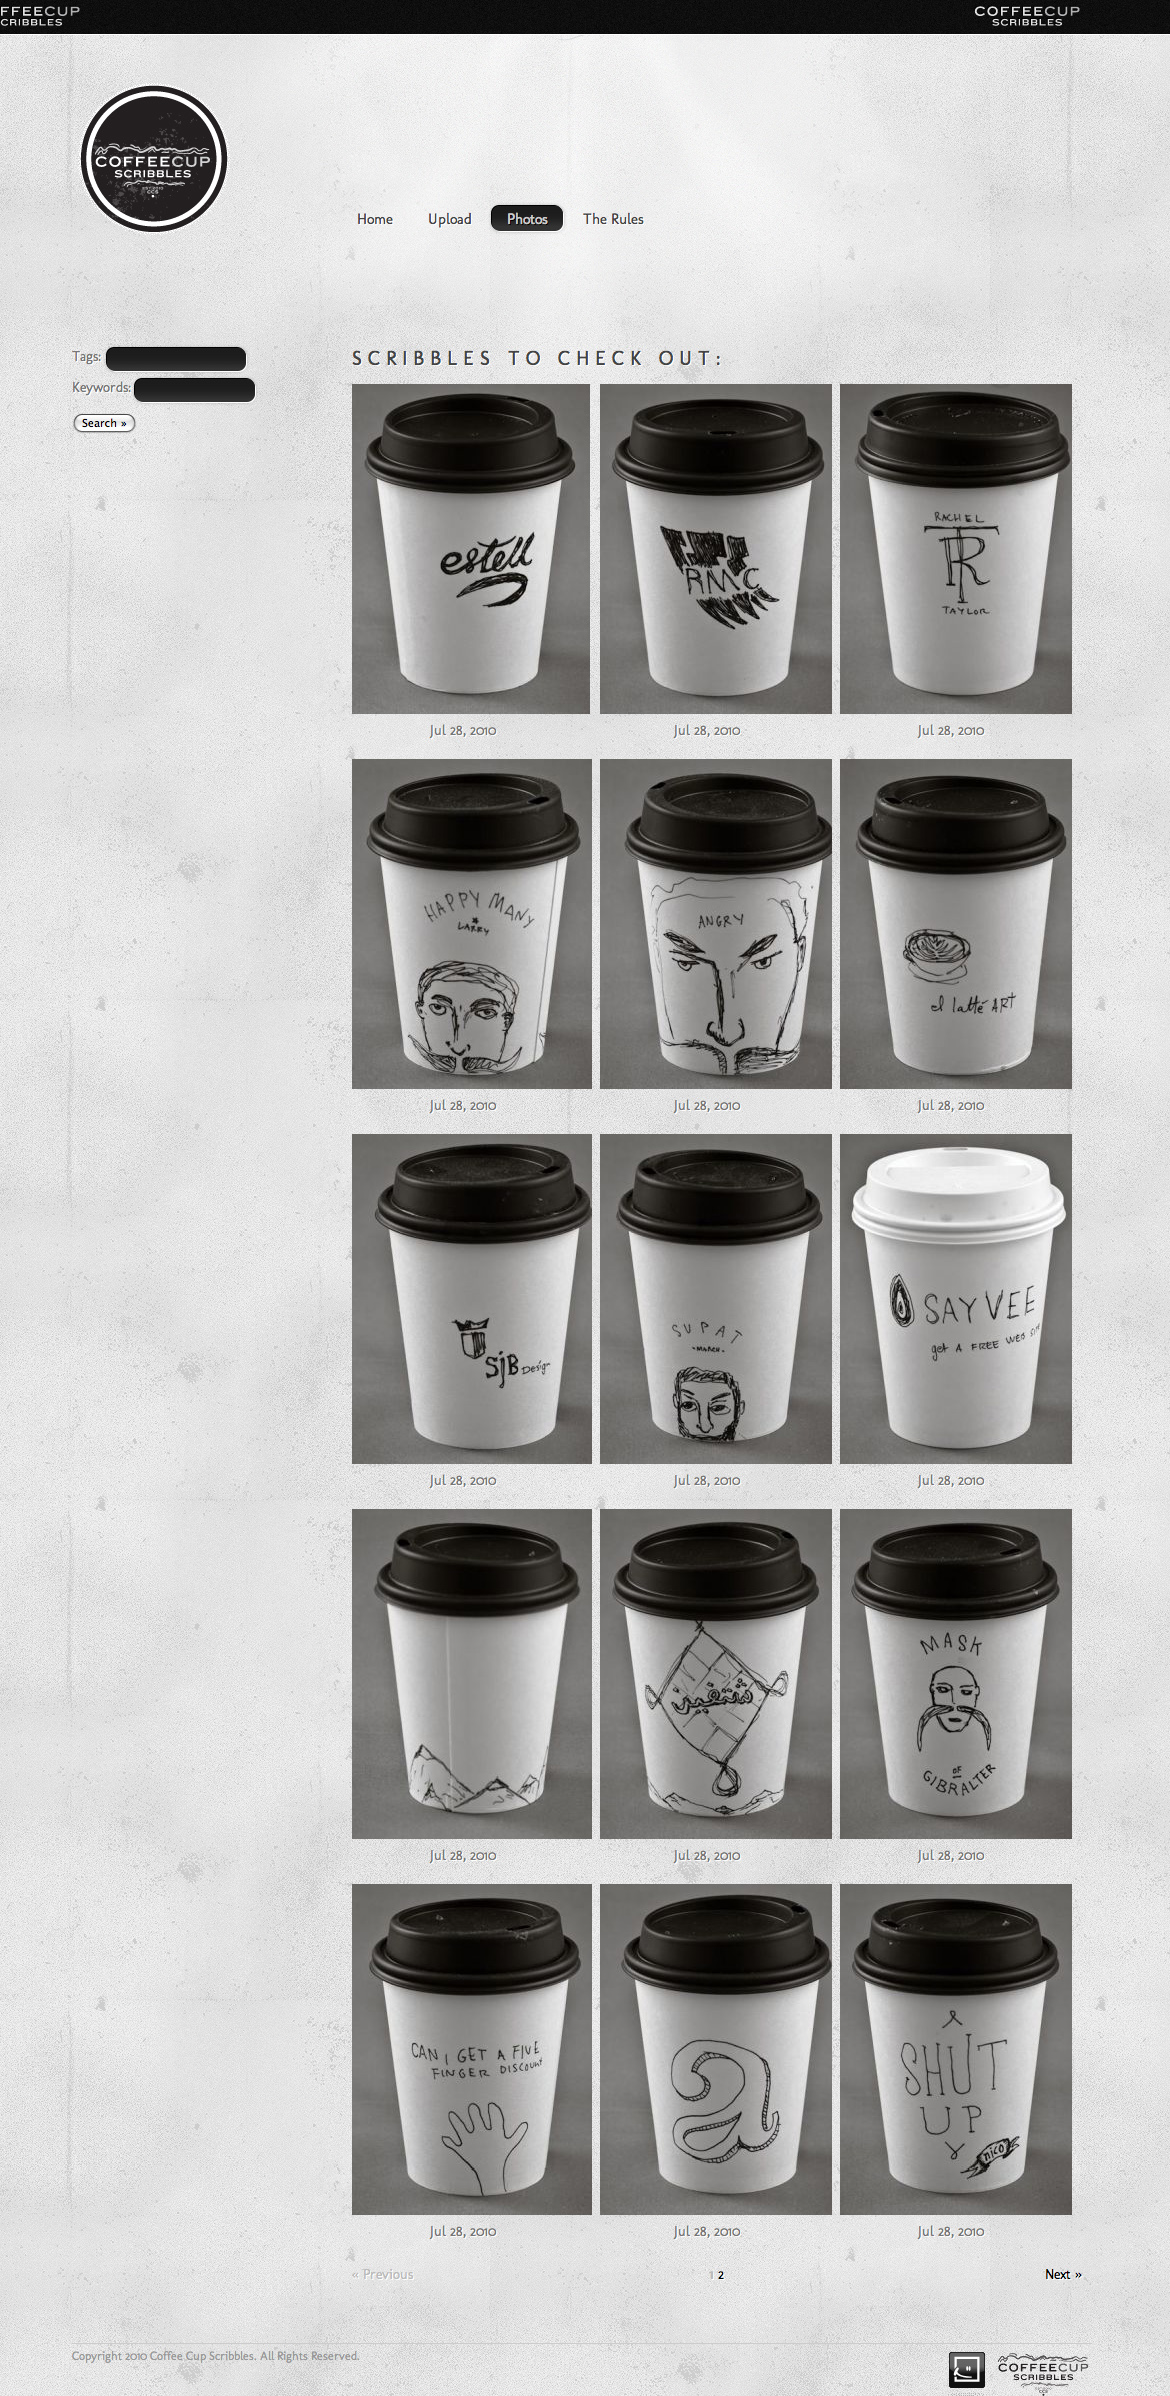 Coffee Cup Scribbles